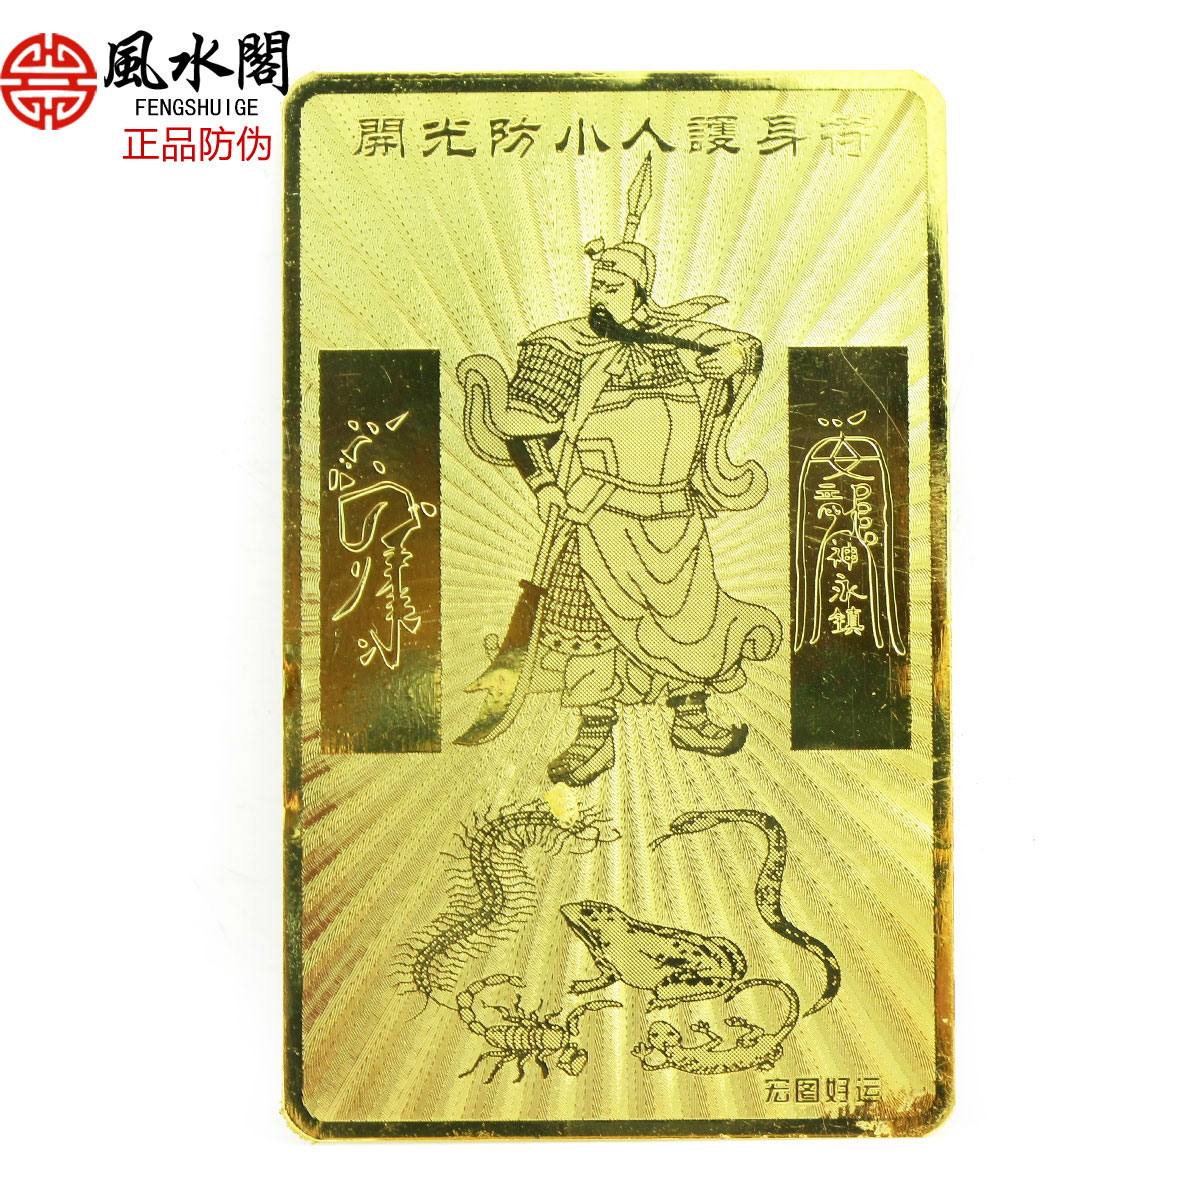 Feng Shui Ge switch Amulet Shurangama mantra gold evil protective anti villain special obstacle is non wholesale